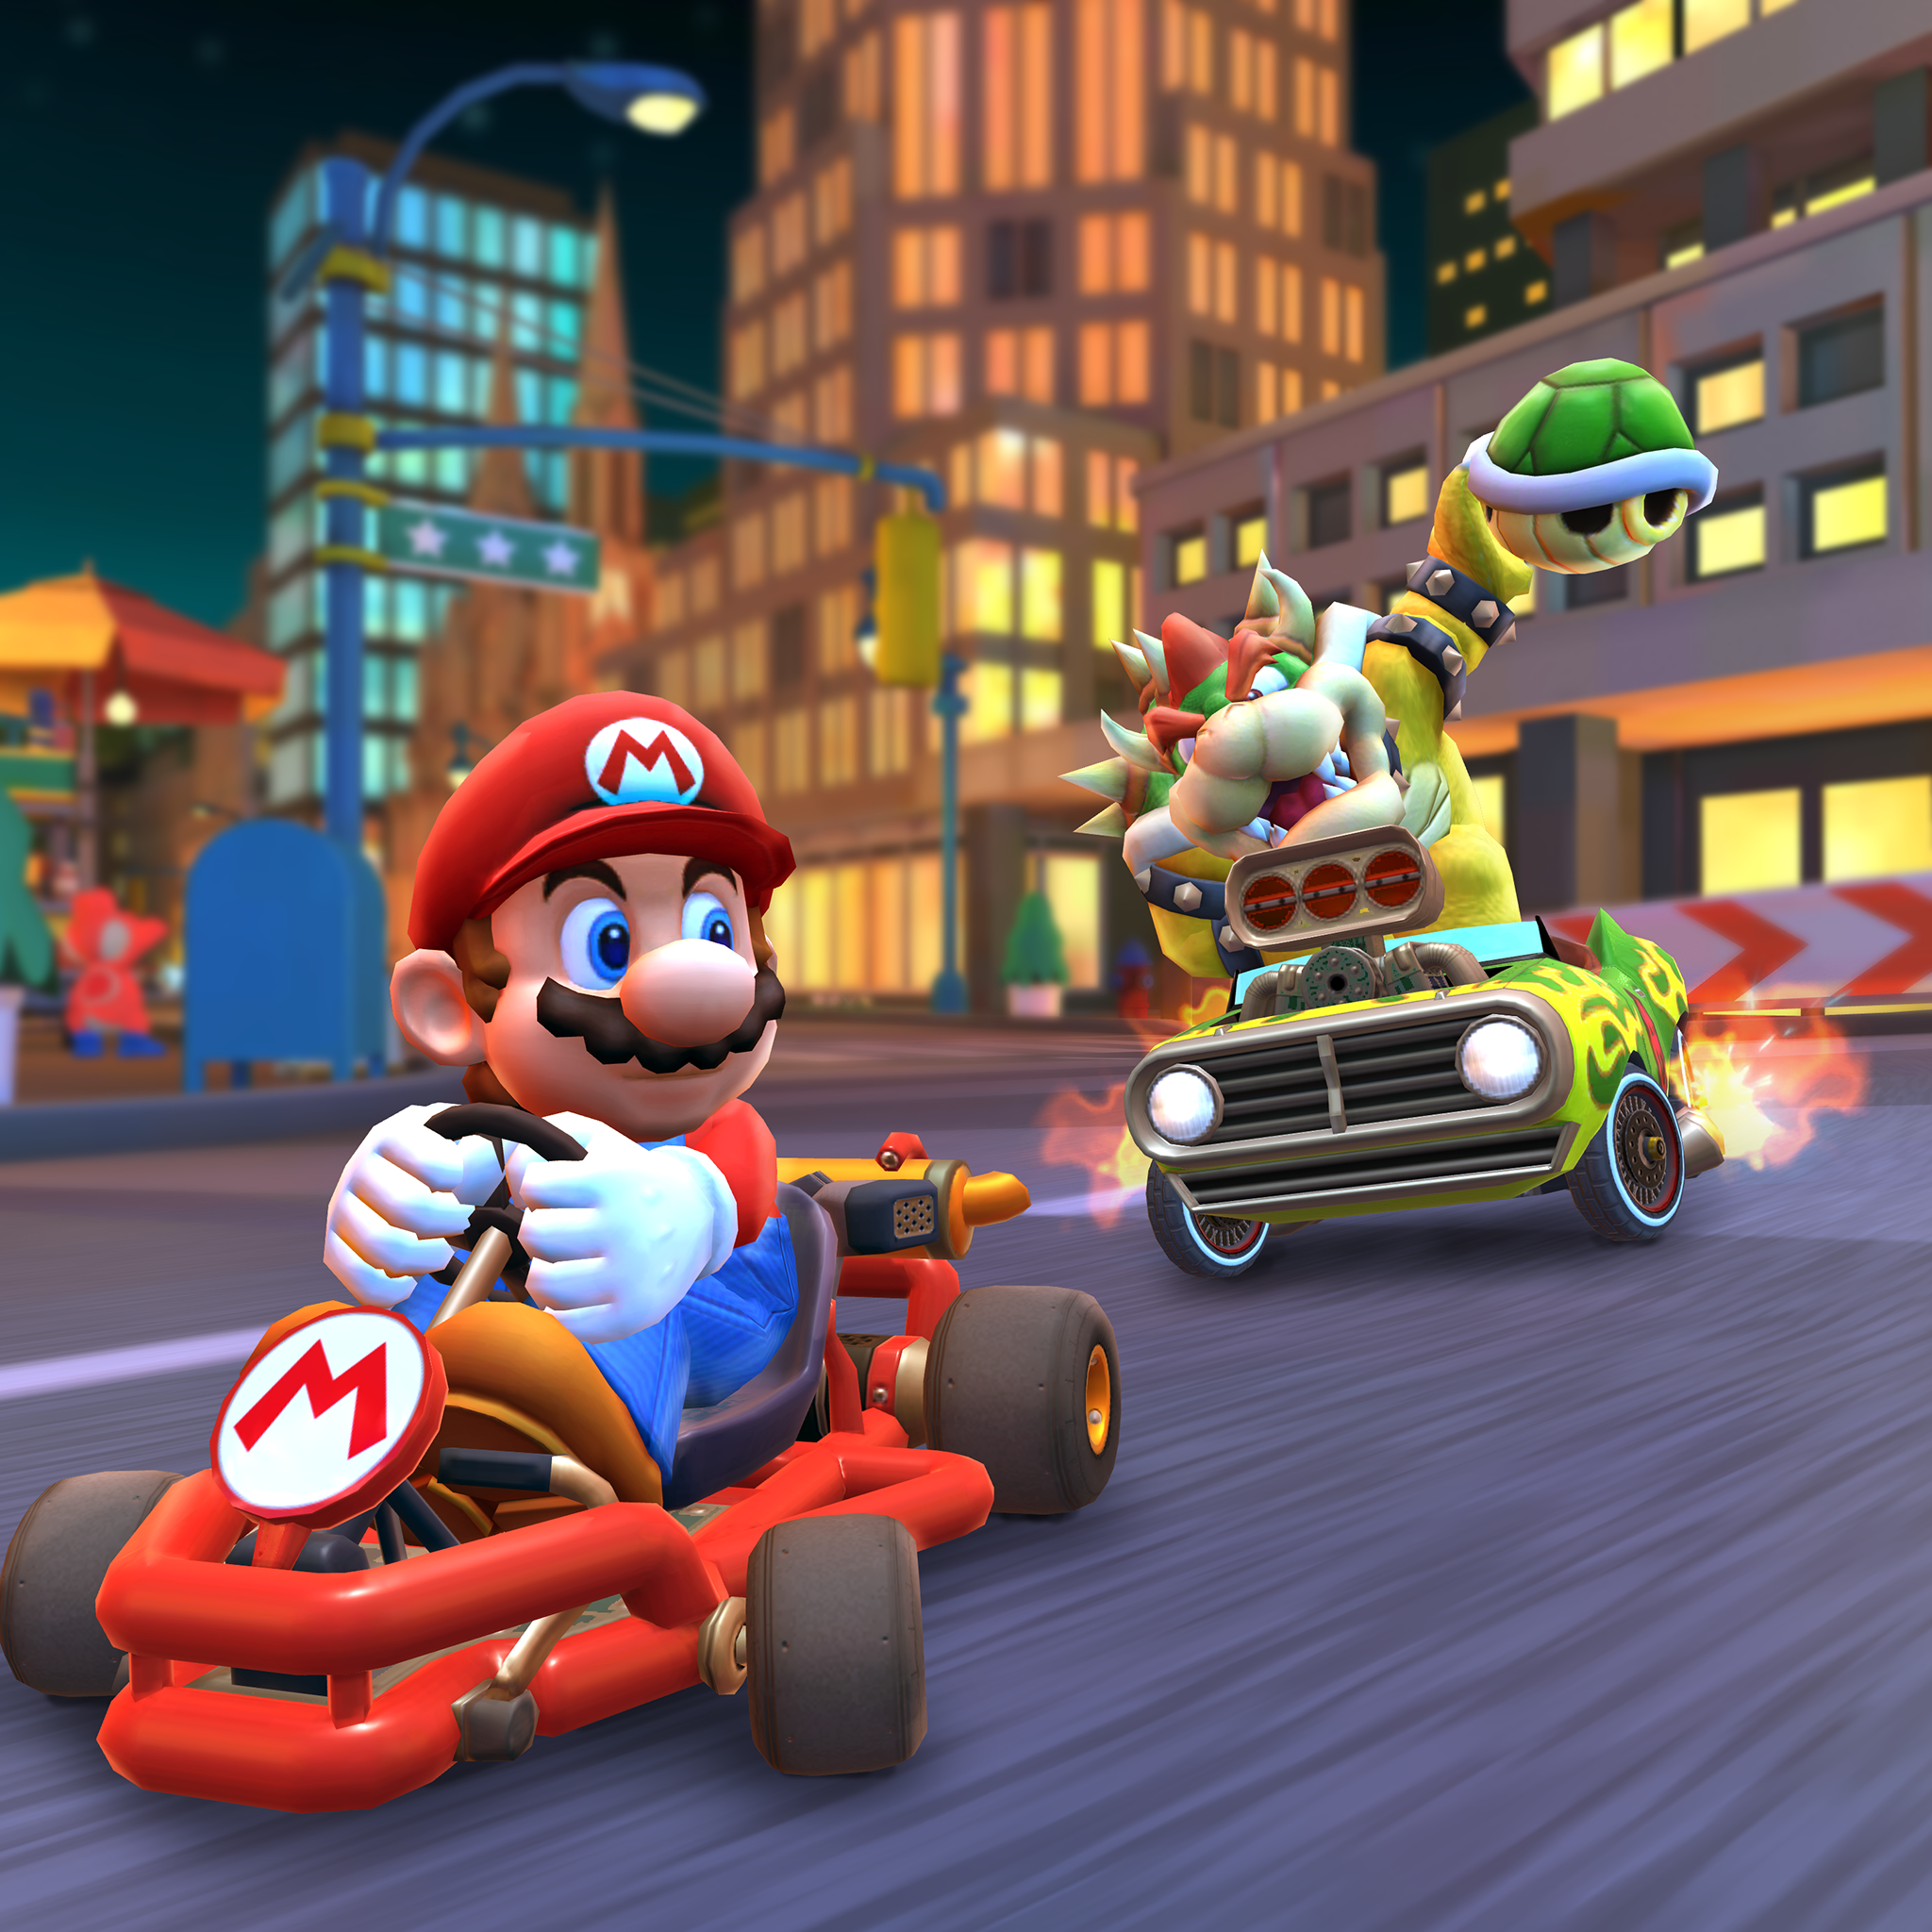 Review Mario Kart Tour Is A Simple Fun Racing Game With A Troubling Monetization Platform Geekwire